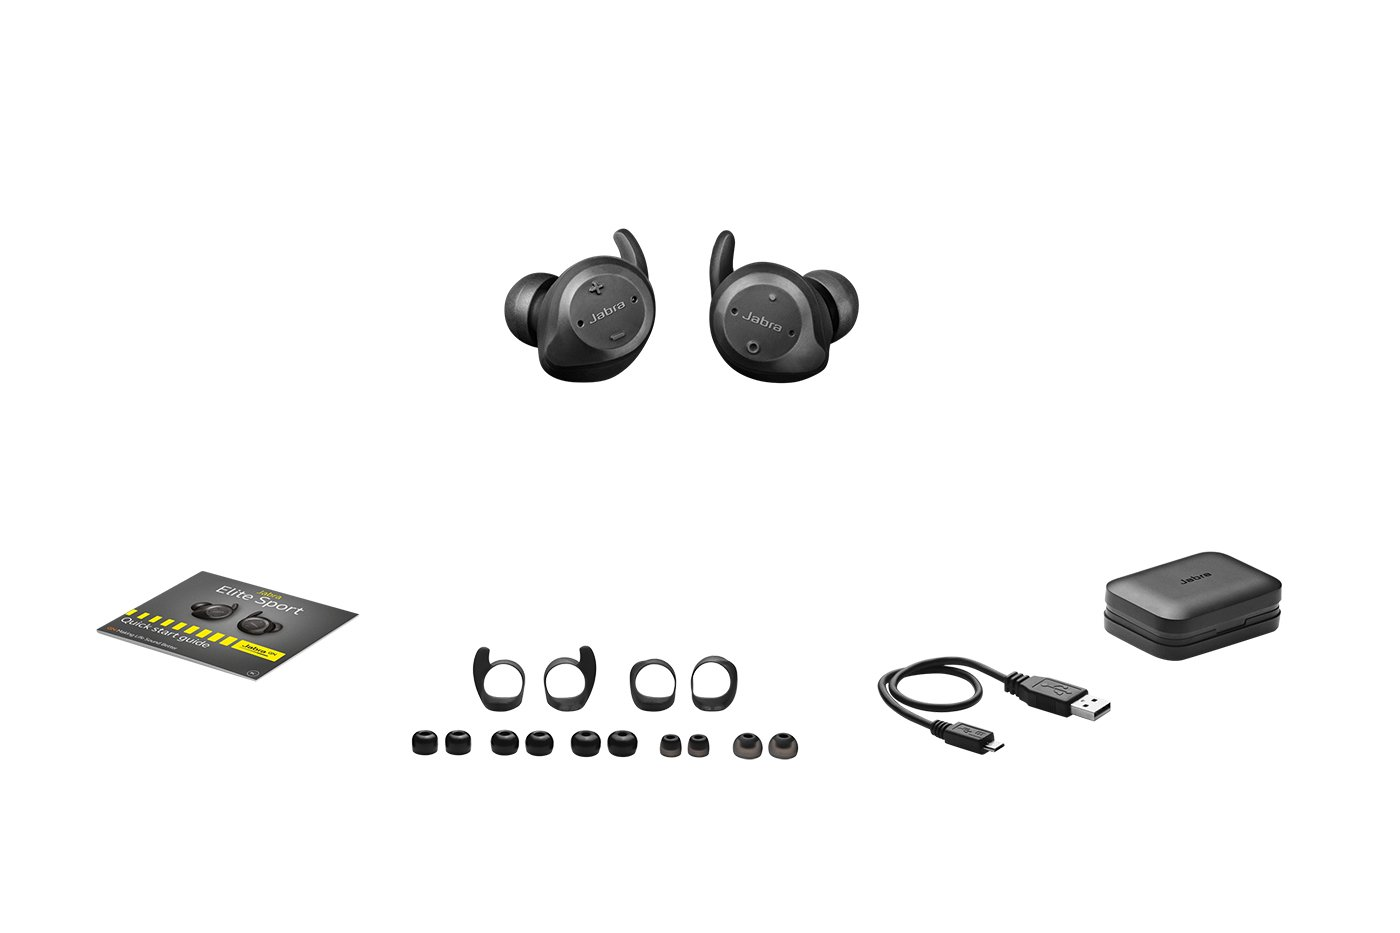 Amazon.com: Jabra Elite Sport True Wireless Waterproof Fitness & Running Earbuds with Heart Rate and Activity Tracker - Advanced wireless connectivity and ...